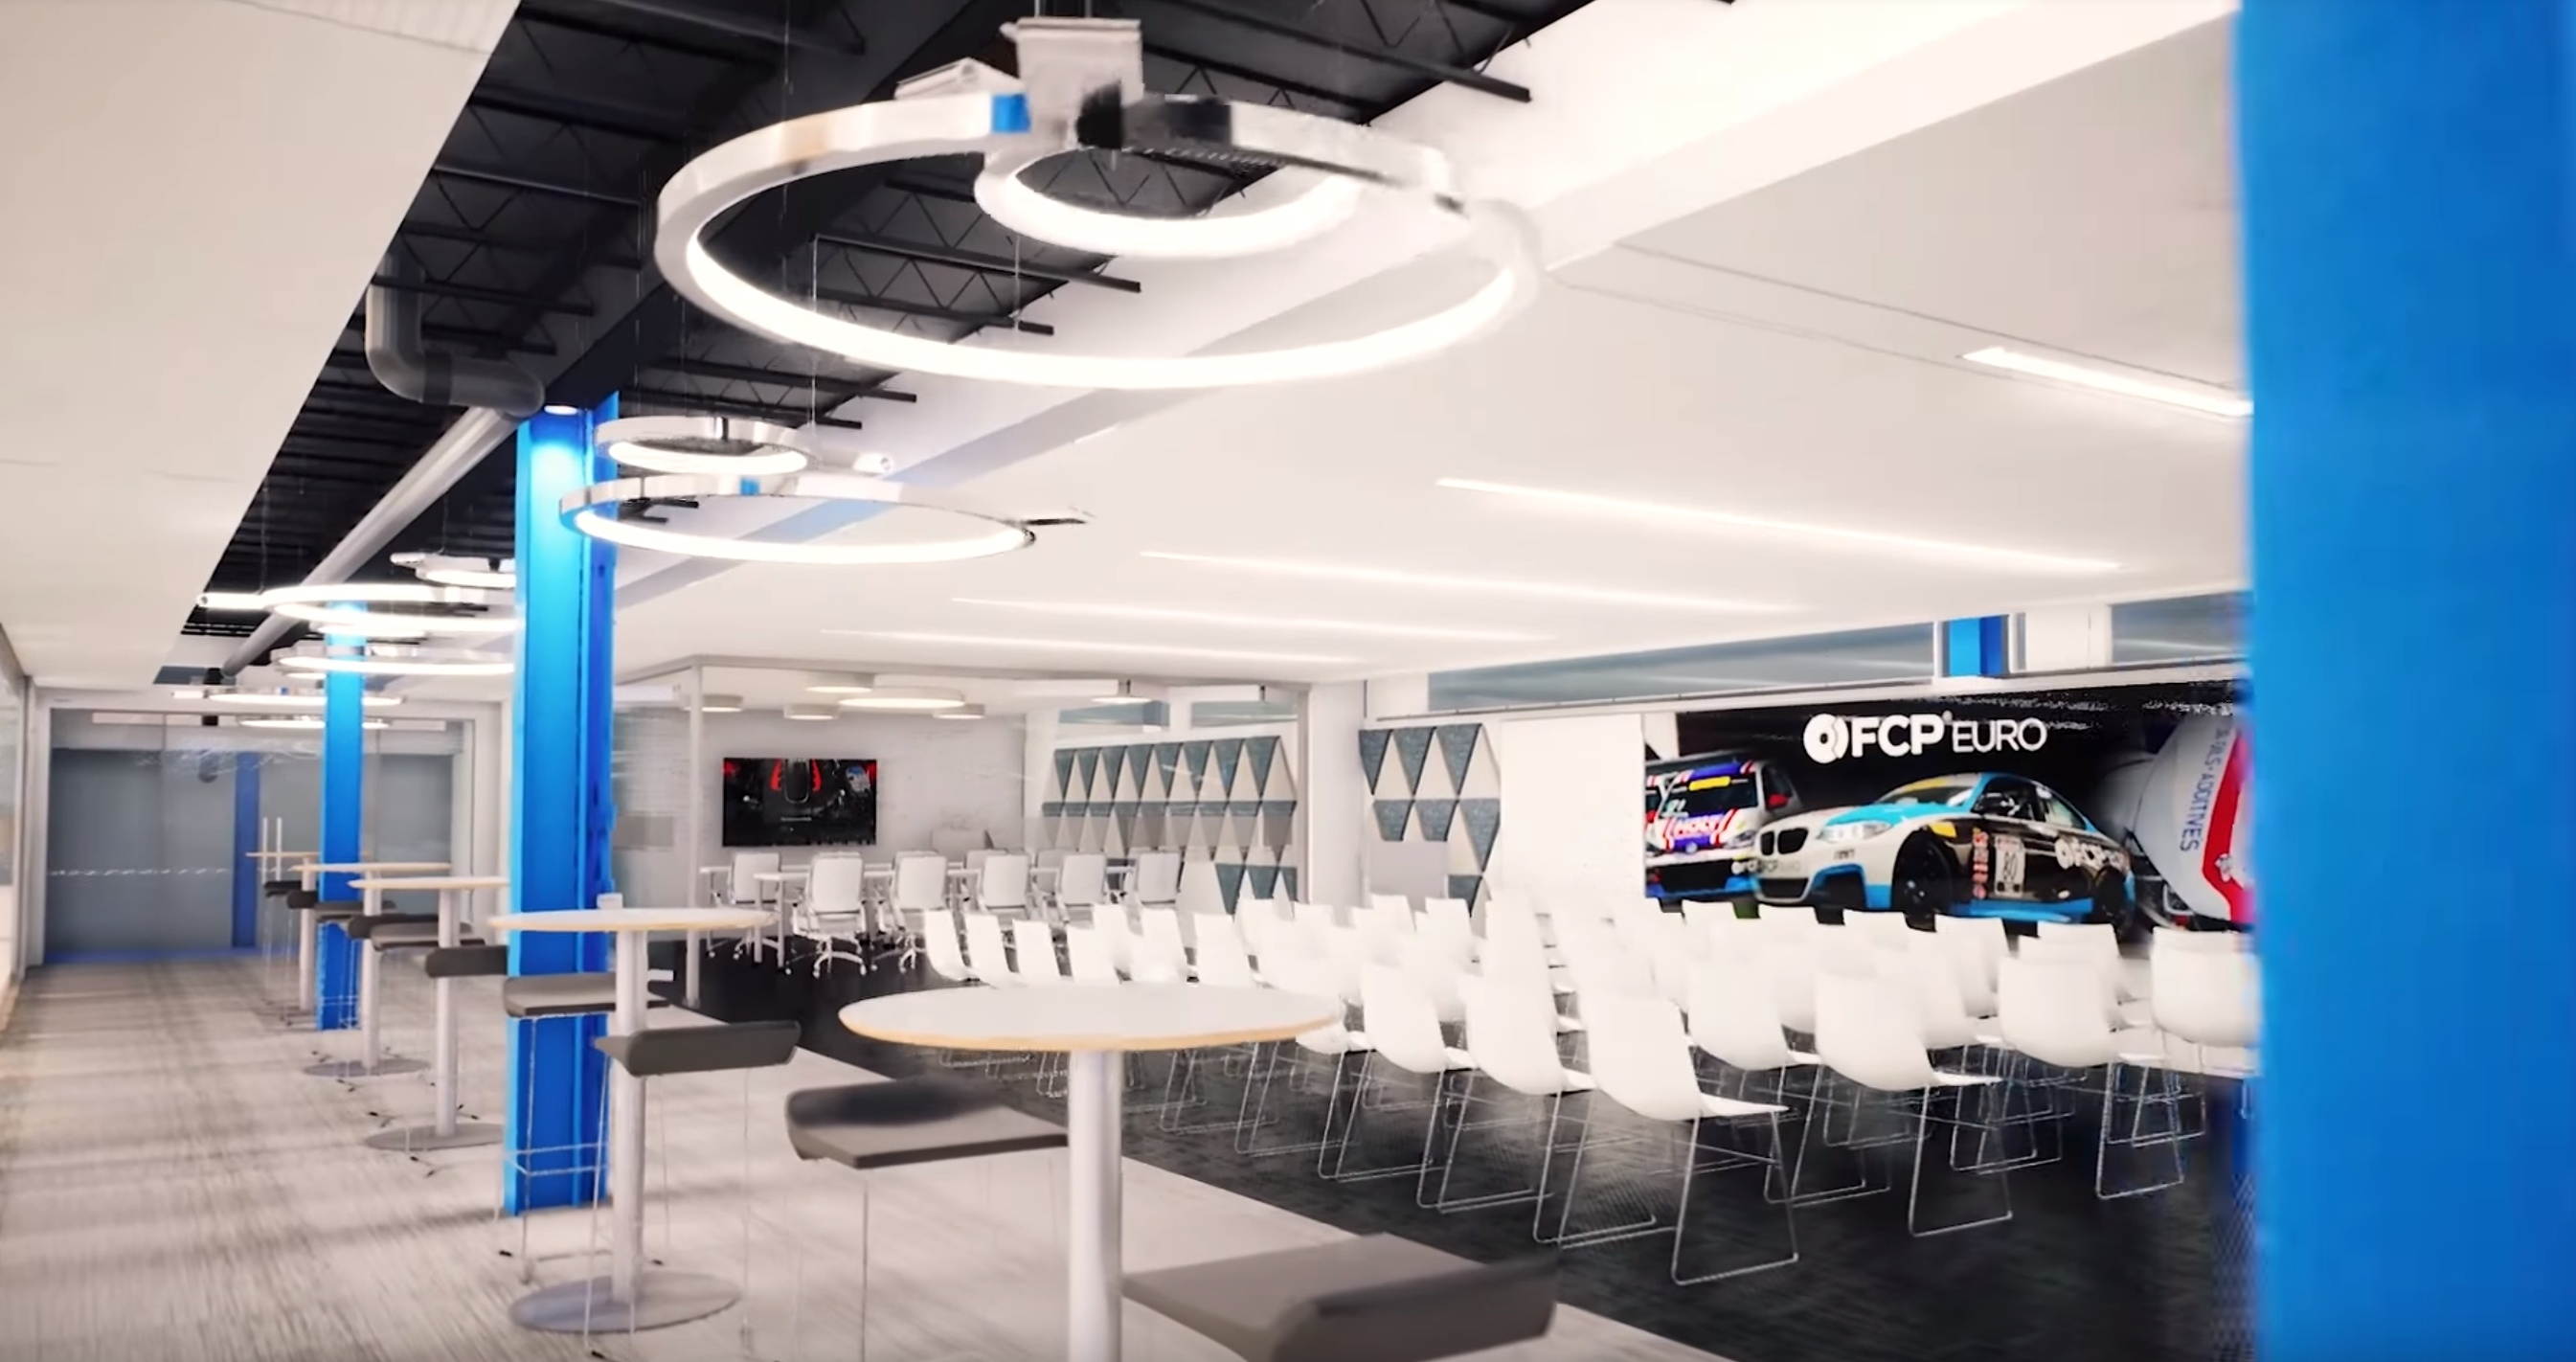 fcp-euro-expansion-mezzanine-meeting-room-2